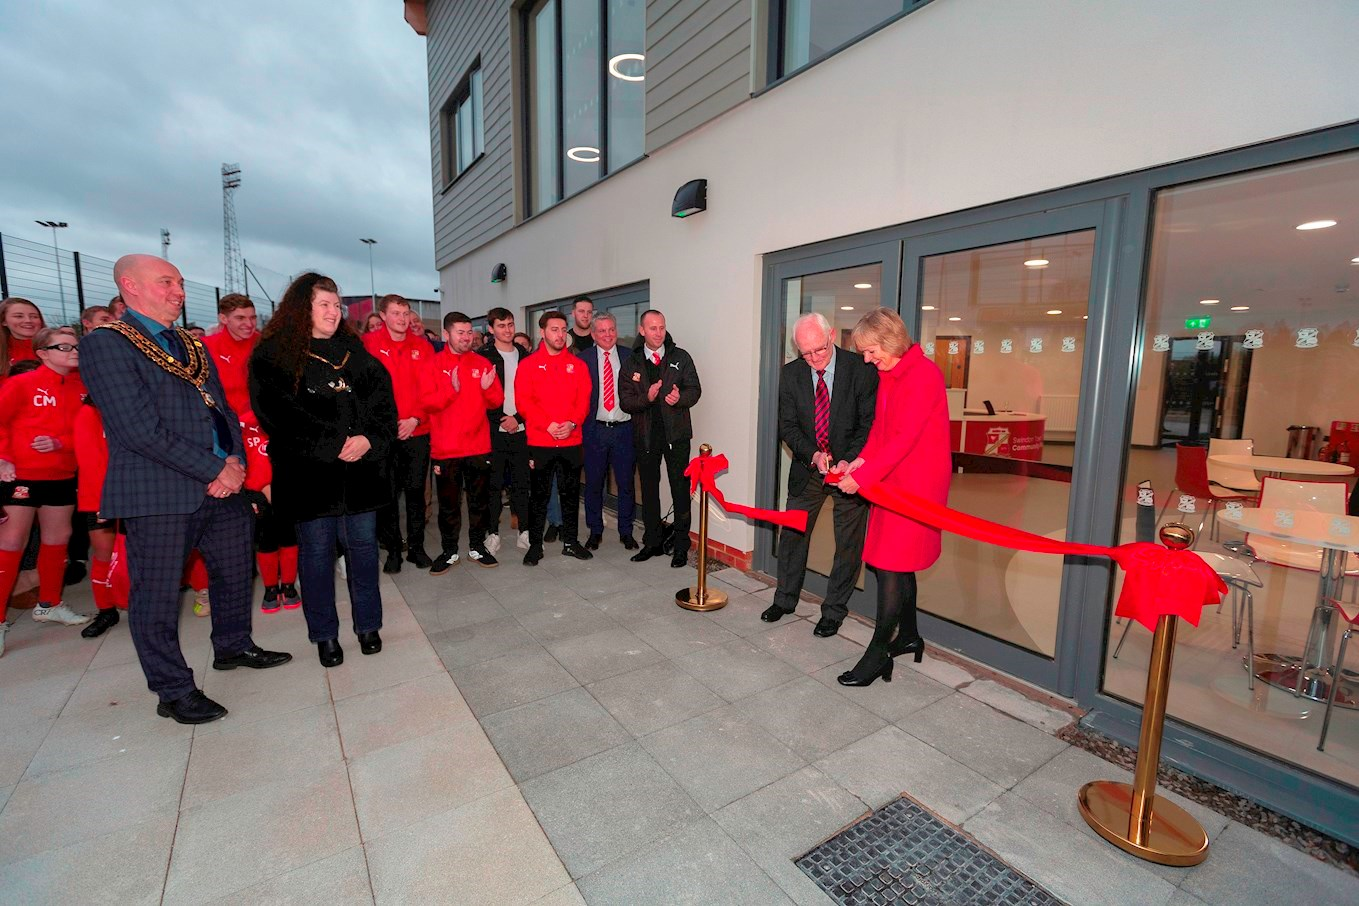 Foundation Park Opened News Swindon Town